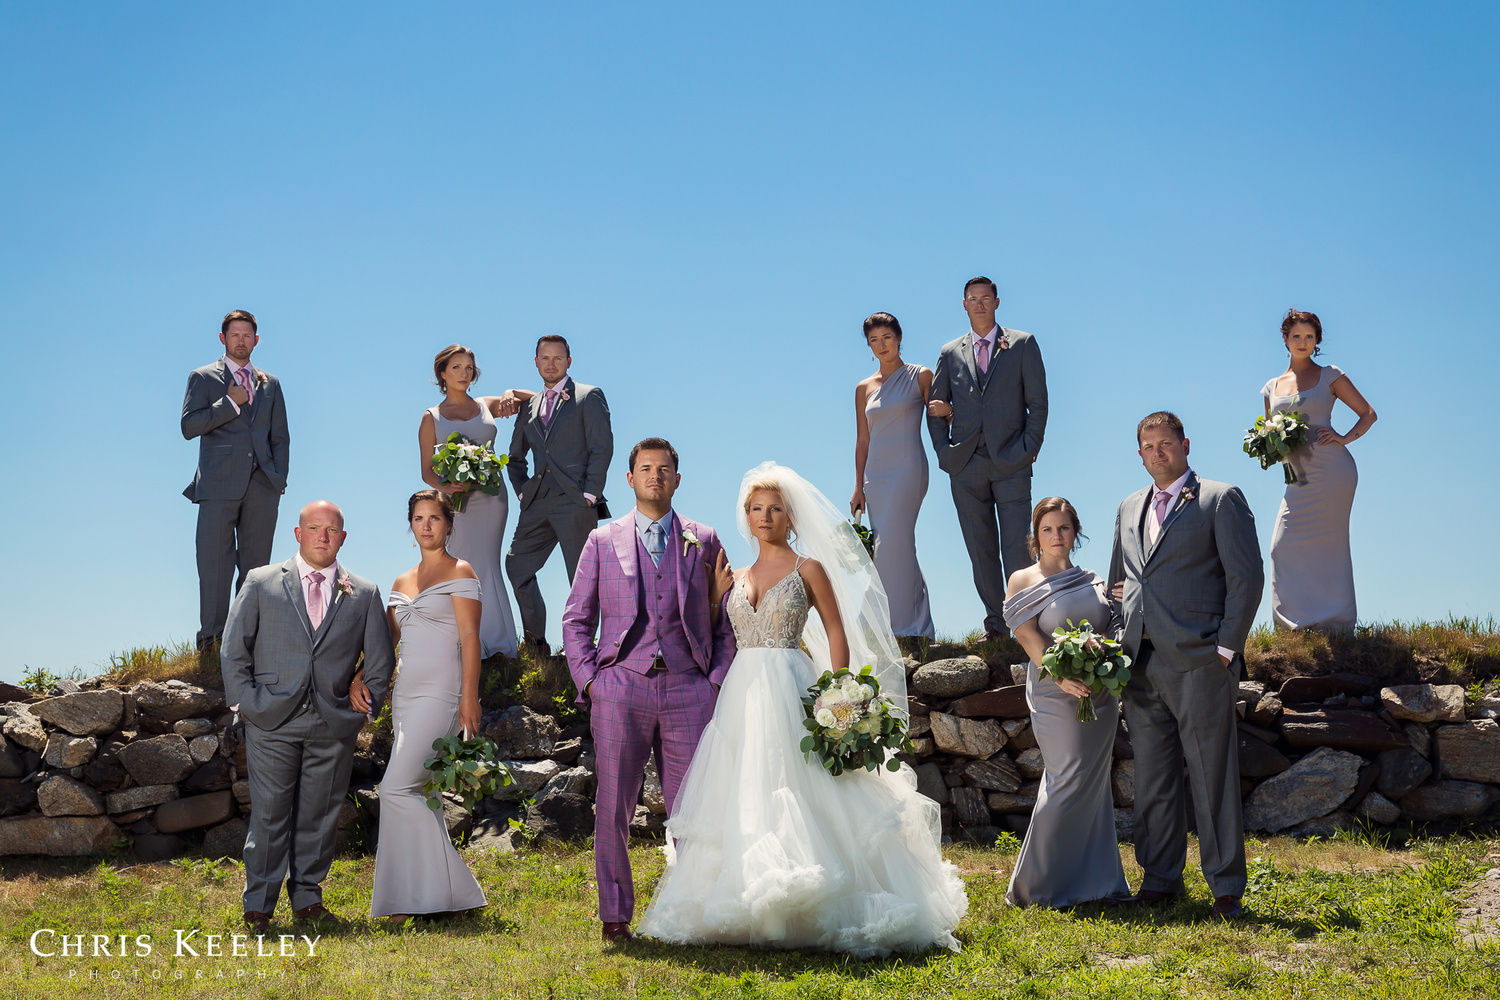 Stylish Wedding Party by Chris Keeley